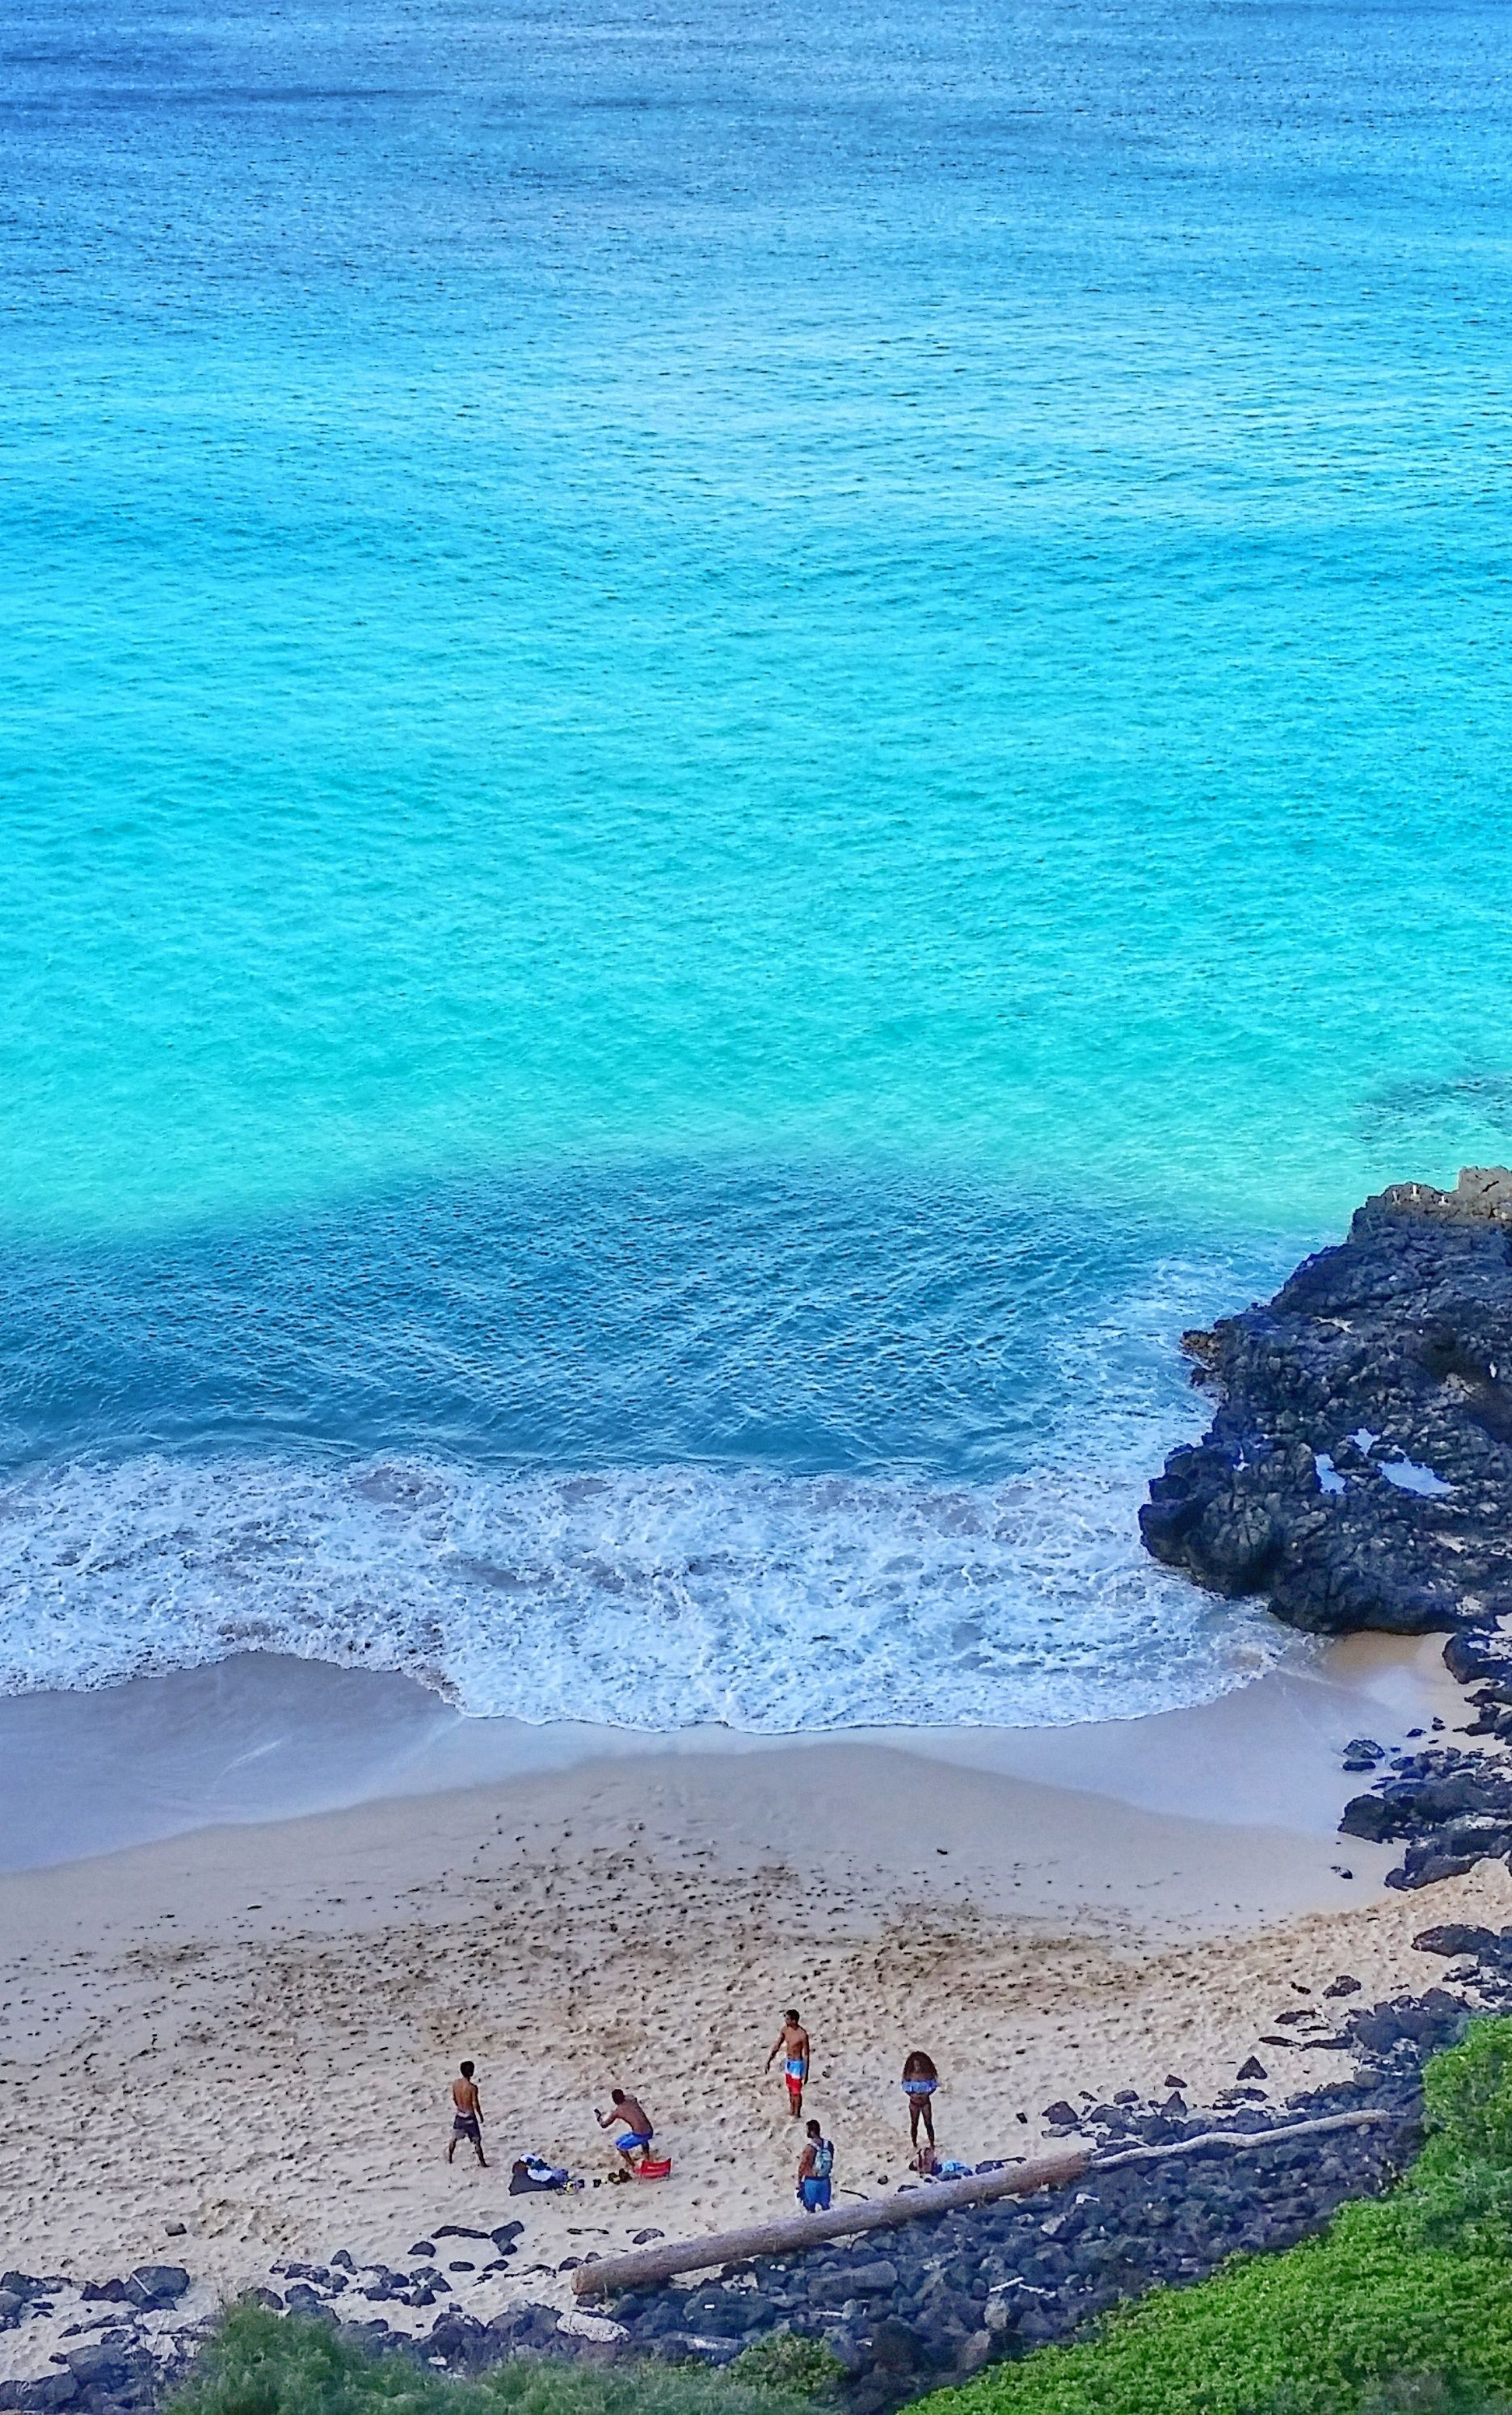 east oahu activities guide best things to do on east side of oahu rh pinterest com things to do at a beach what to do at the beach on a date